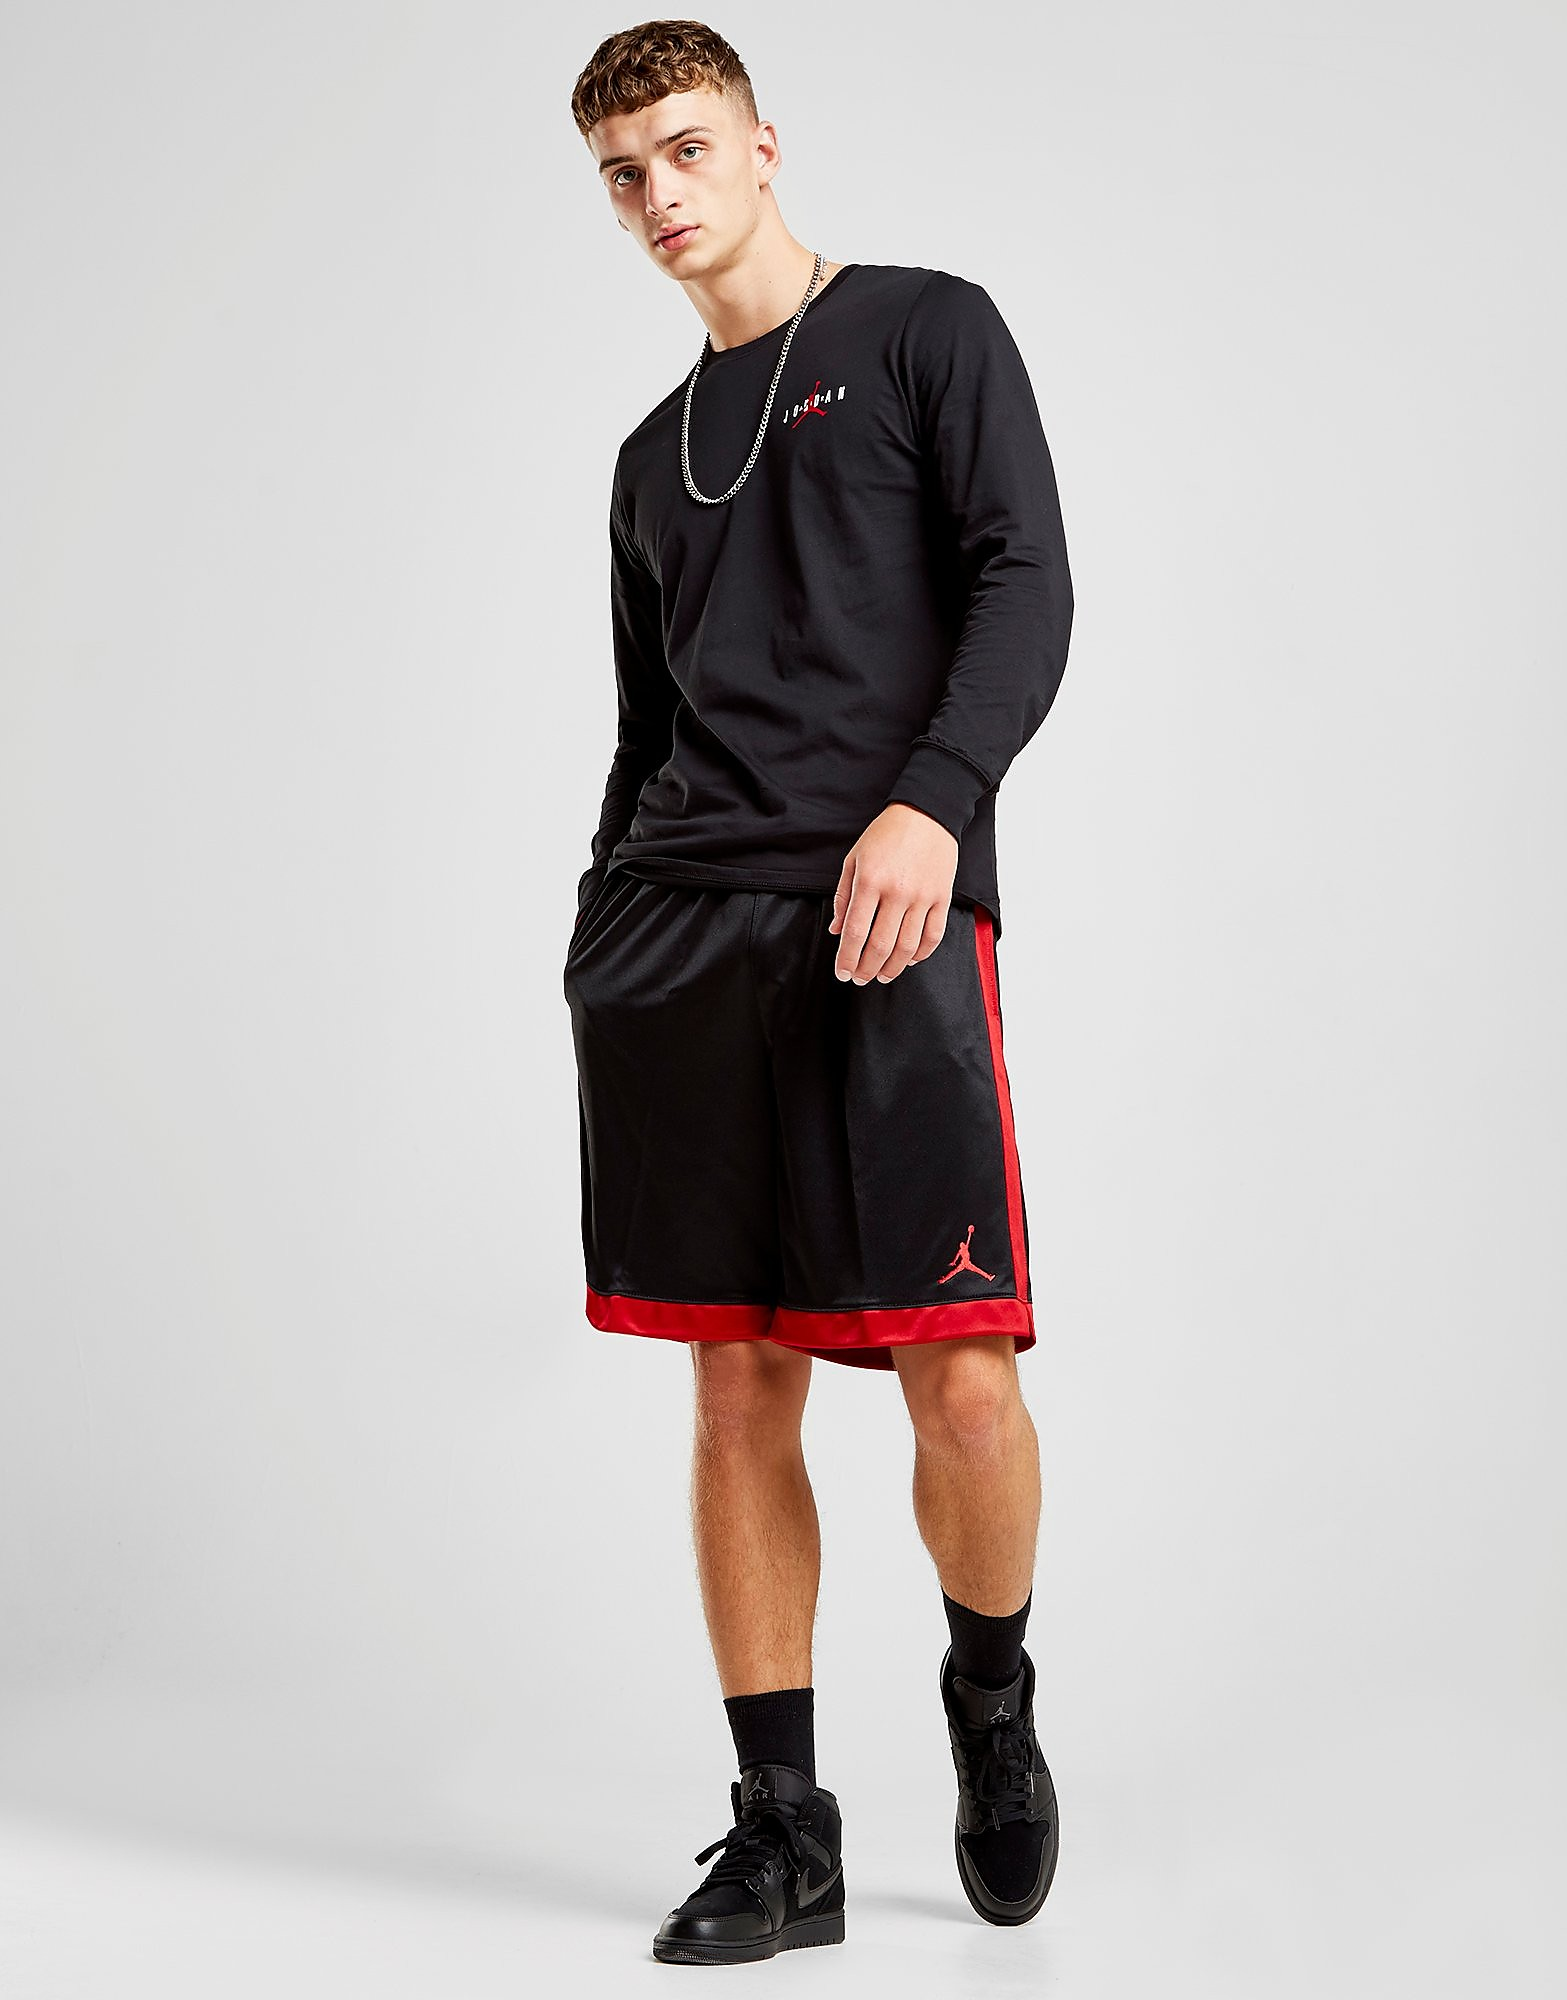 Jordan Shorts Men Jd Sports